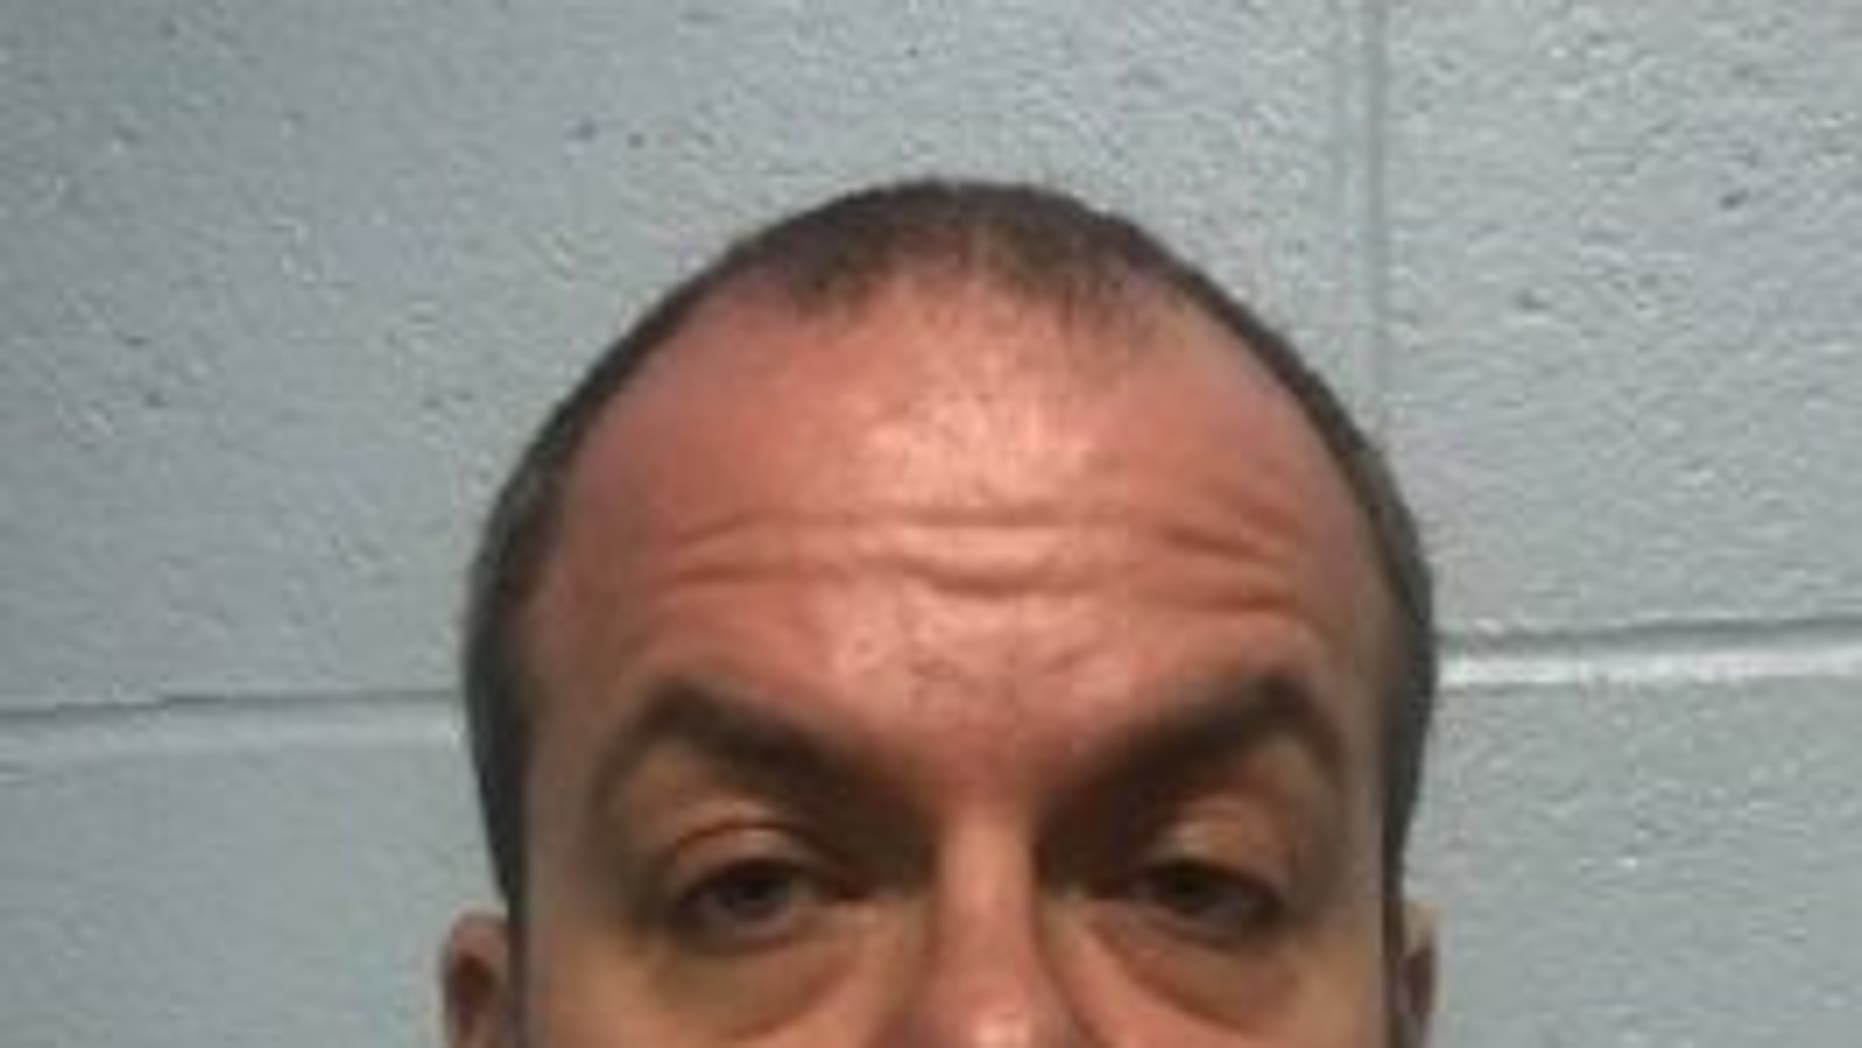 Pawel Boduch, 43, was arrested and charged in the murder of his parents.